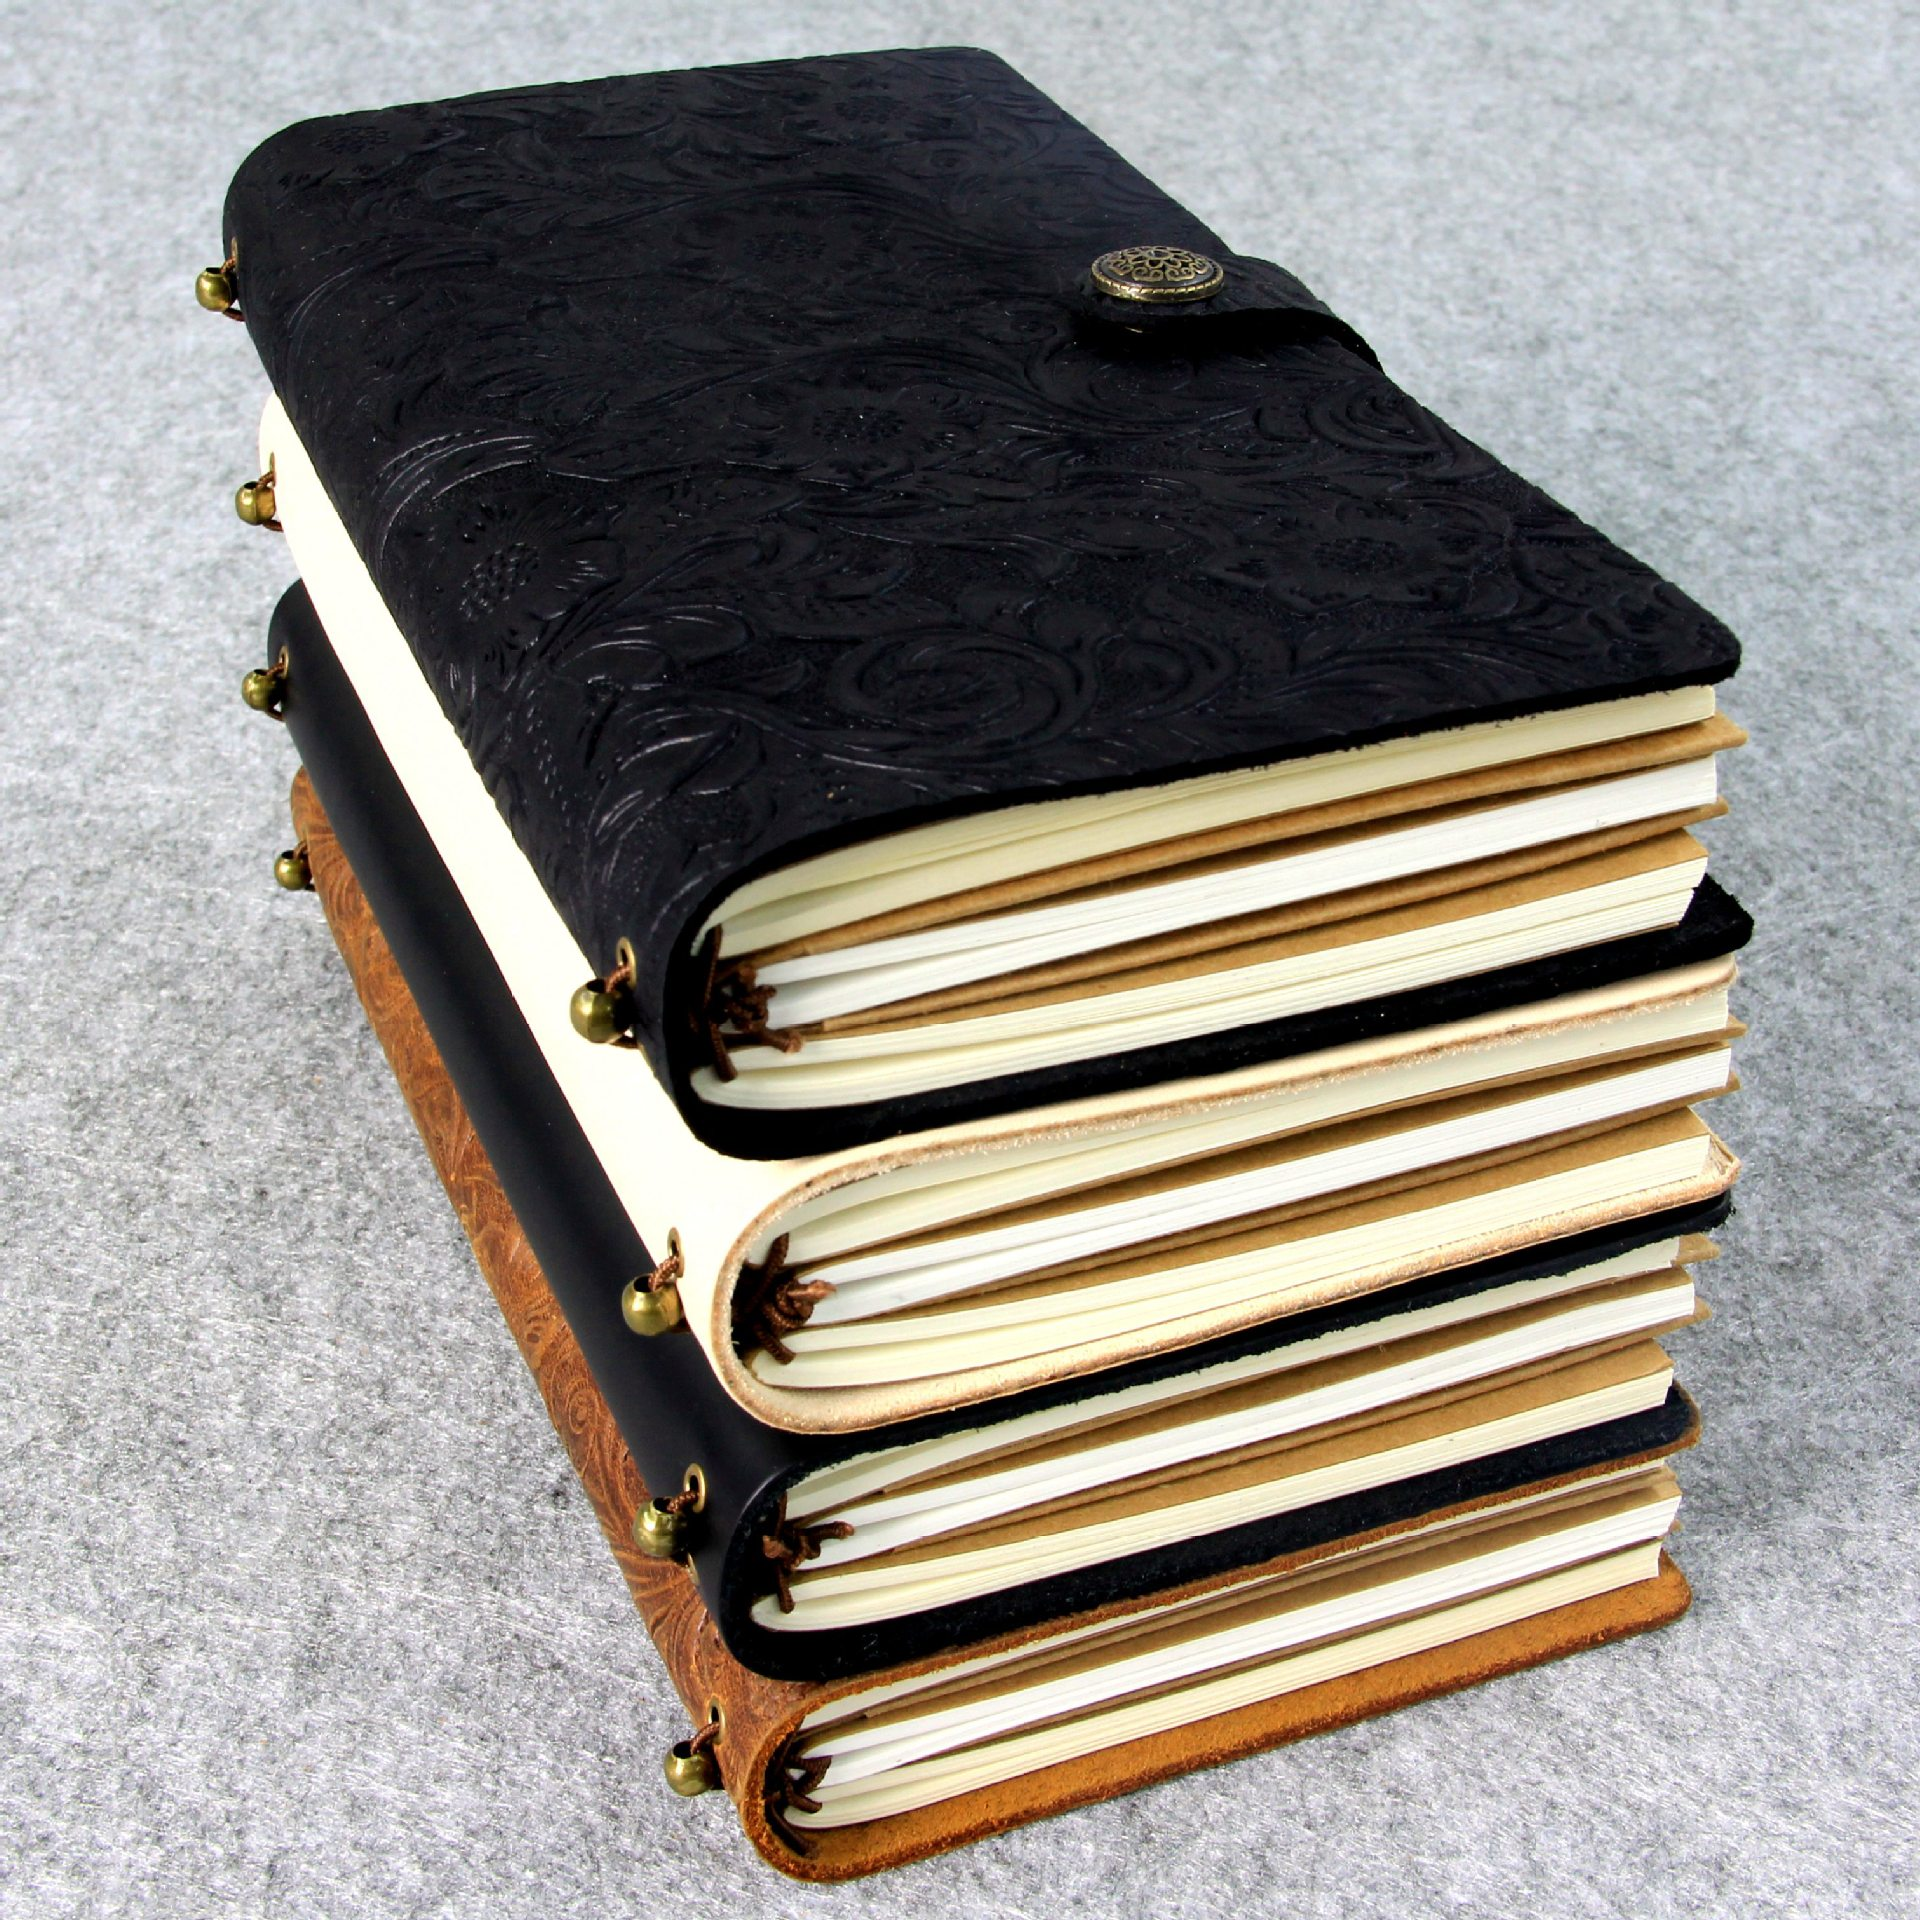 100% Genuine Leather Travelers Notebook Diary Journal Vintage Handmade Cowhide gift Business Office Notebook 13x22cm<br>